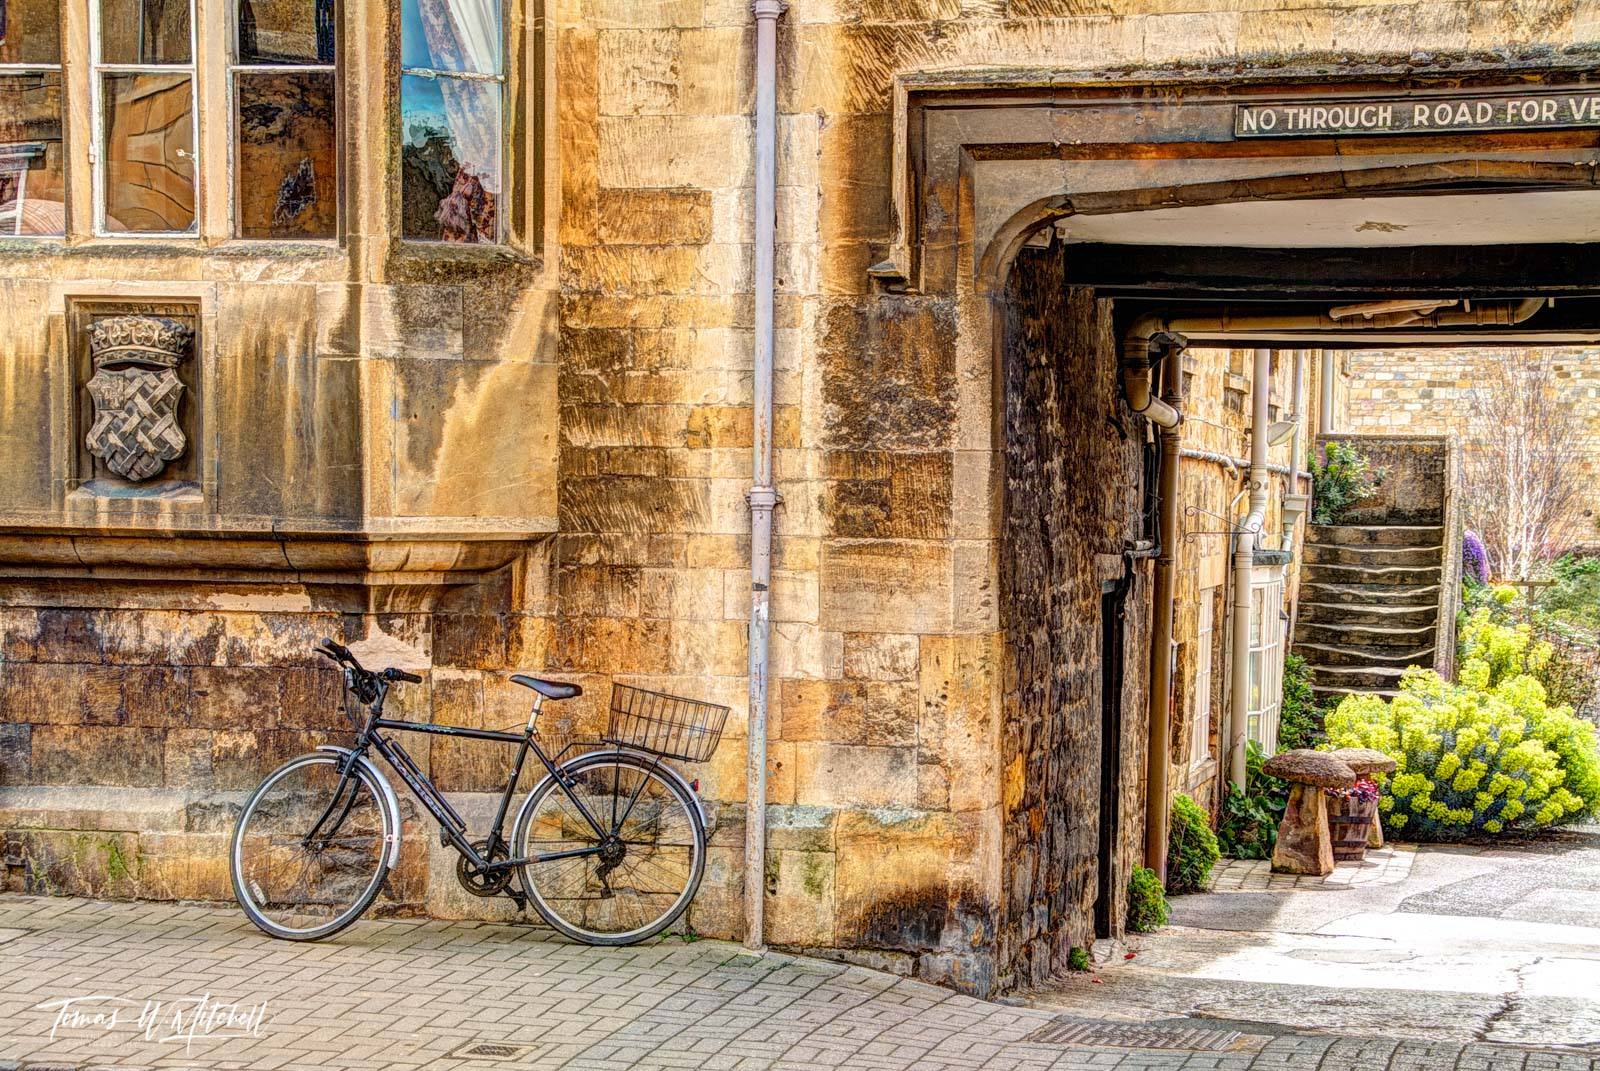 limited edition, museum grade, fine art, prints, photograph, cotswolds, england, bike, small town, photo